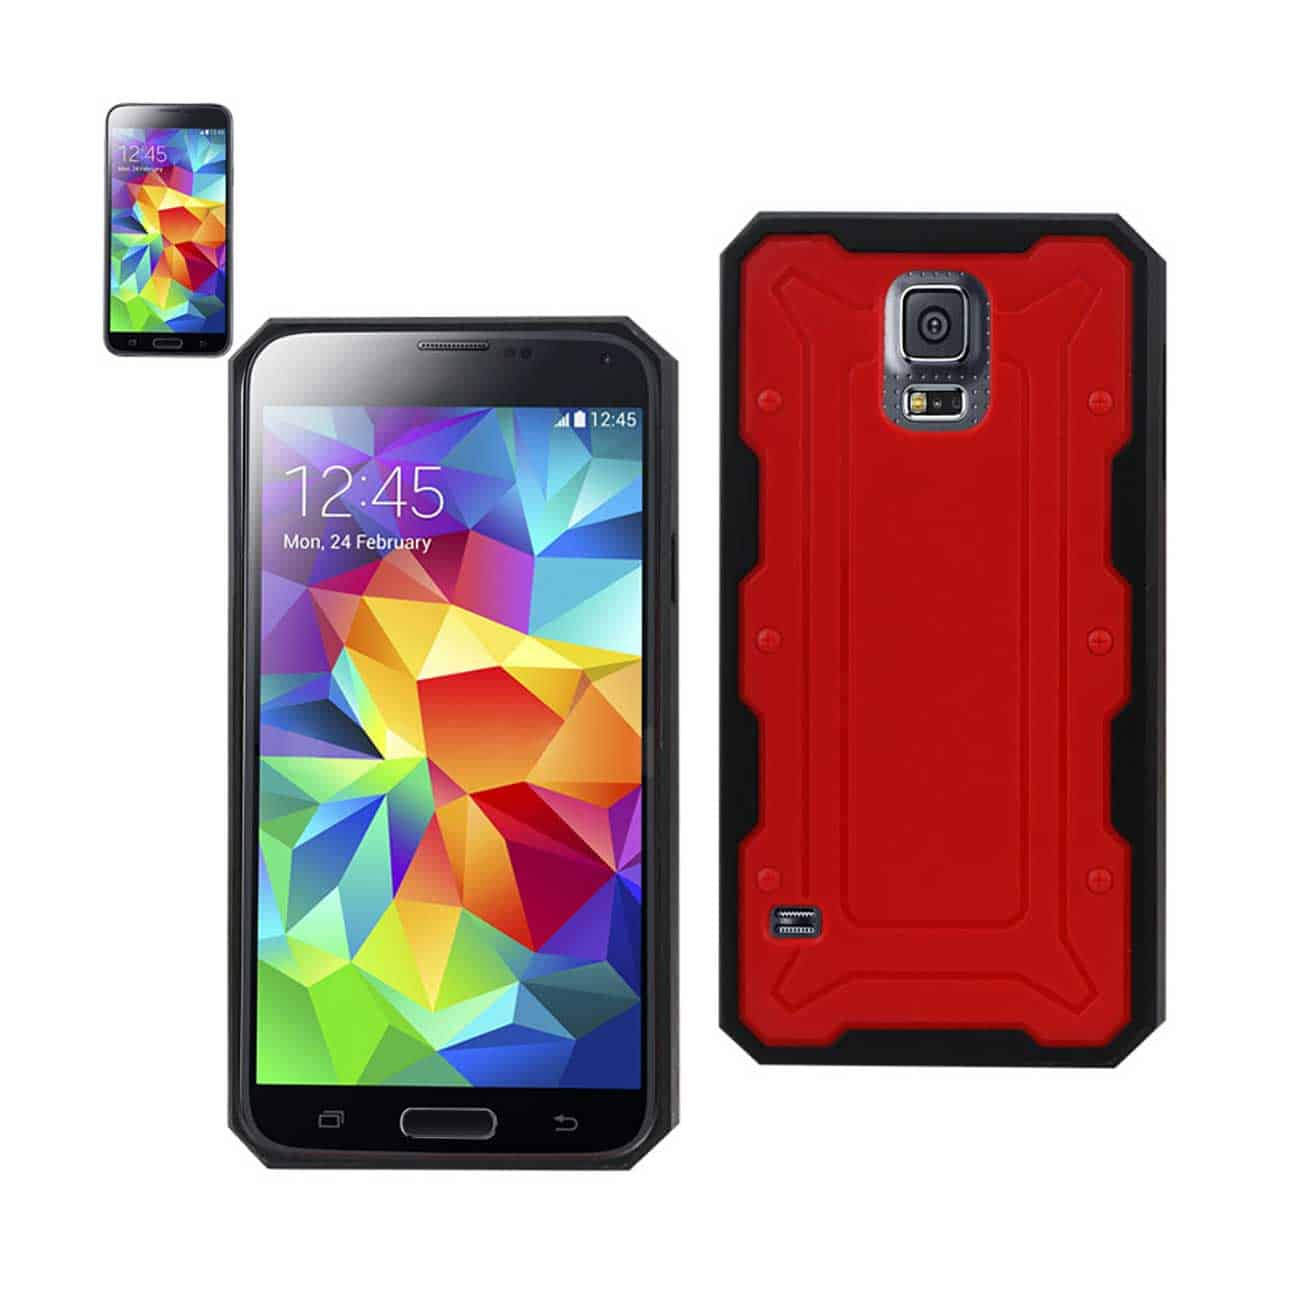 SAMSUNG GALAXY S5 DUAL COLOR TRANSFORMER CASE IN RED BLACK